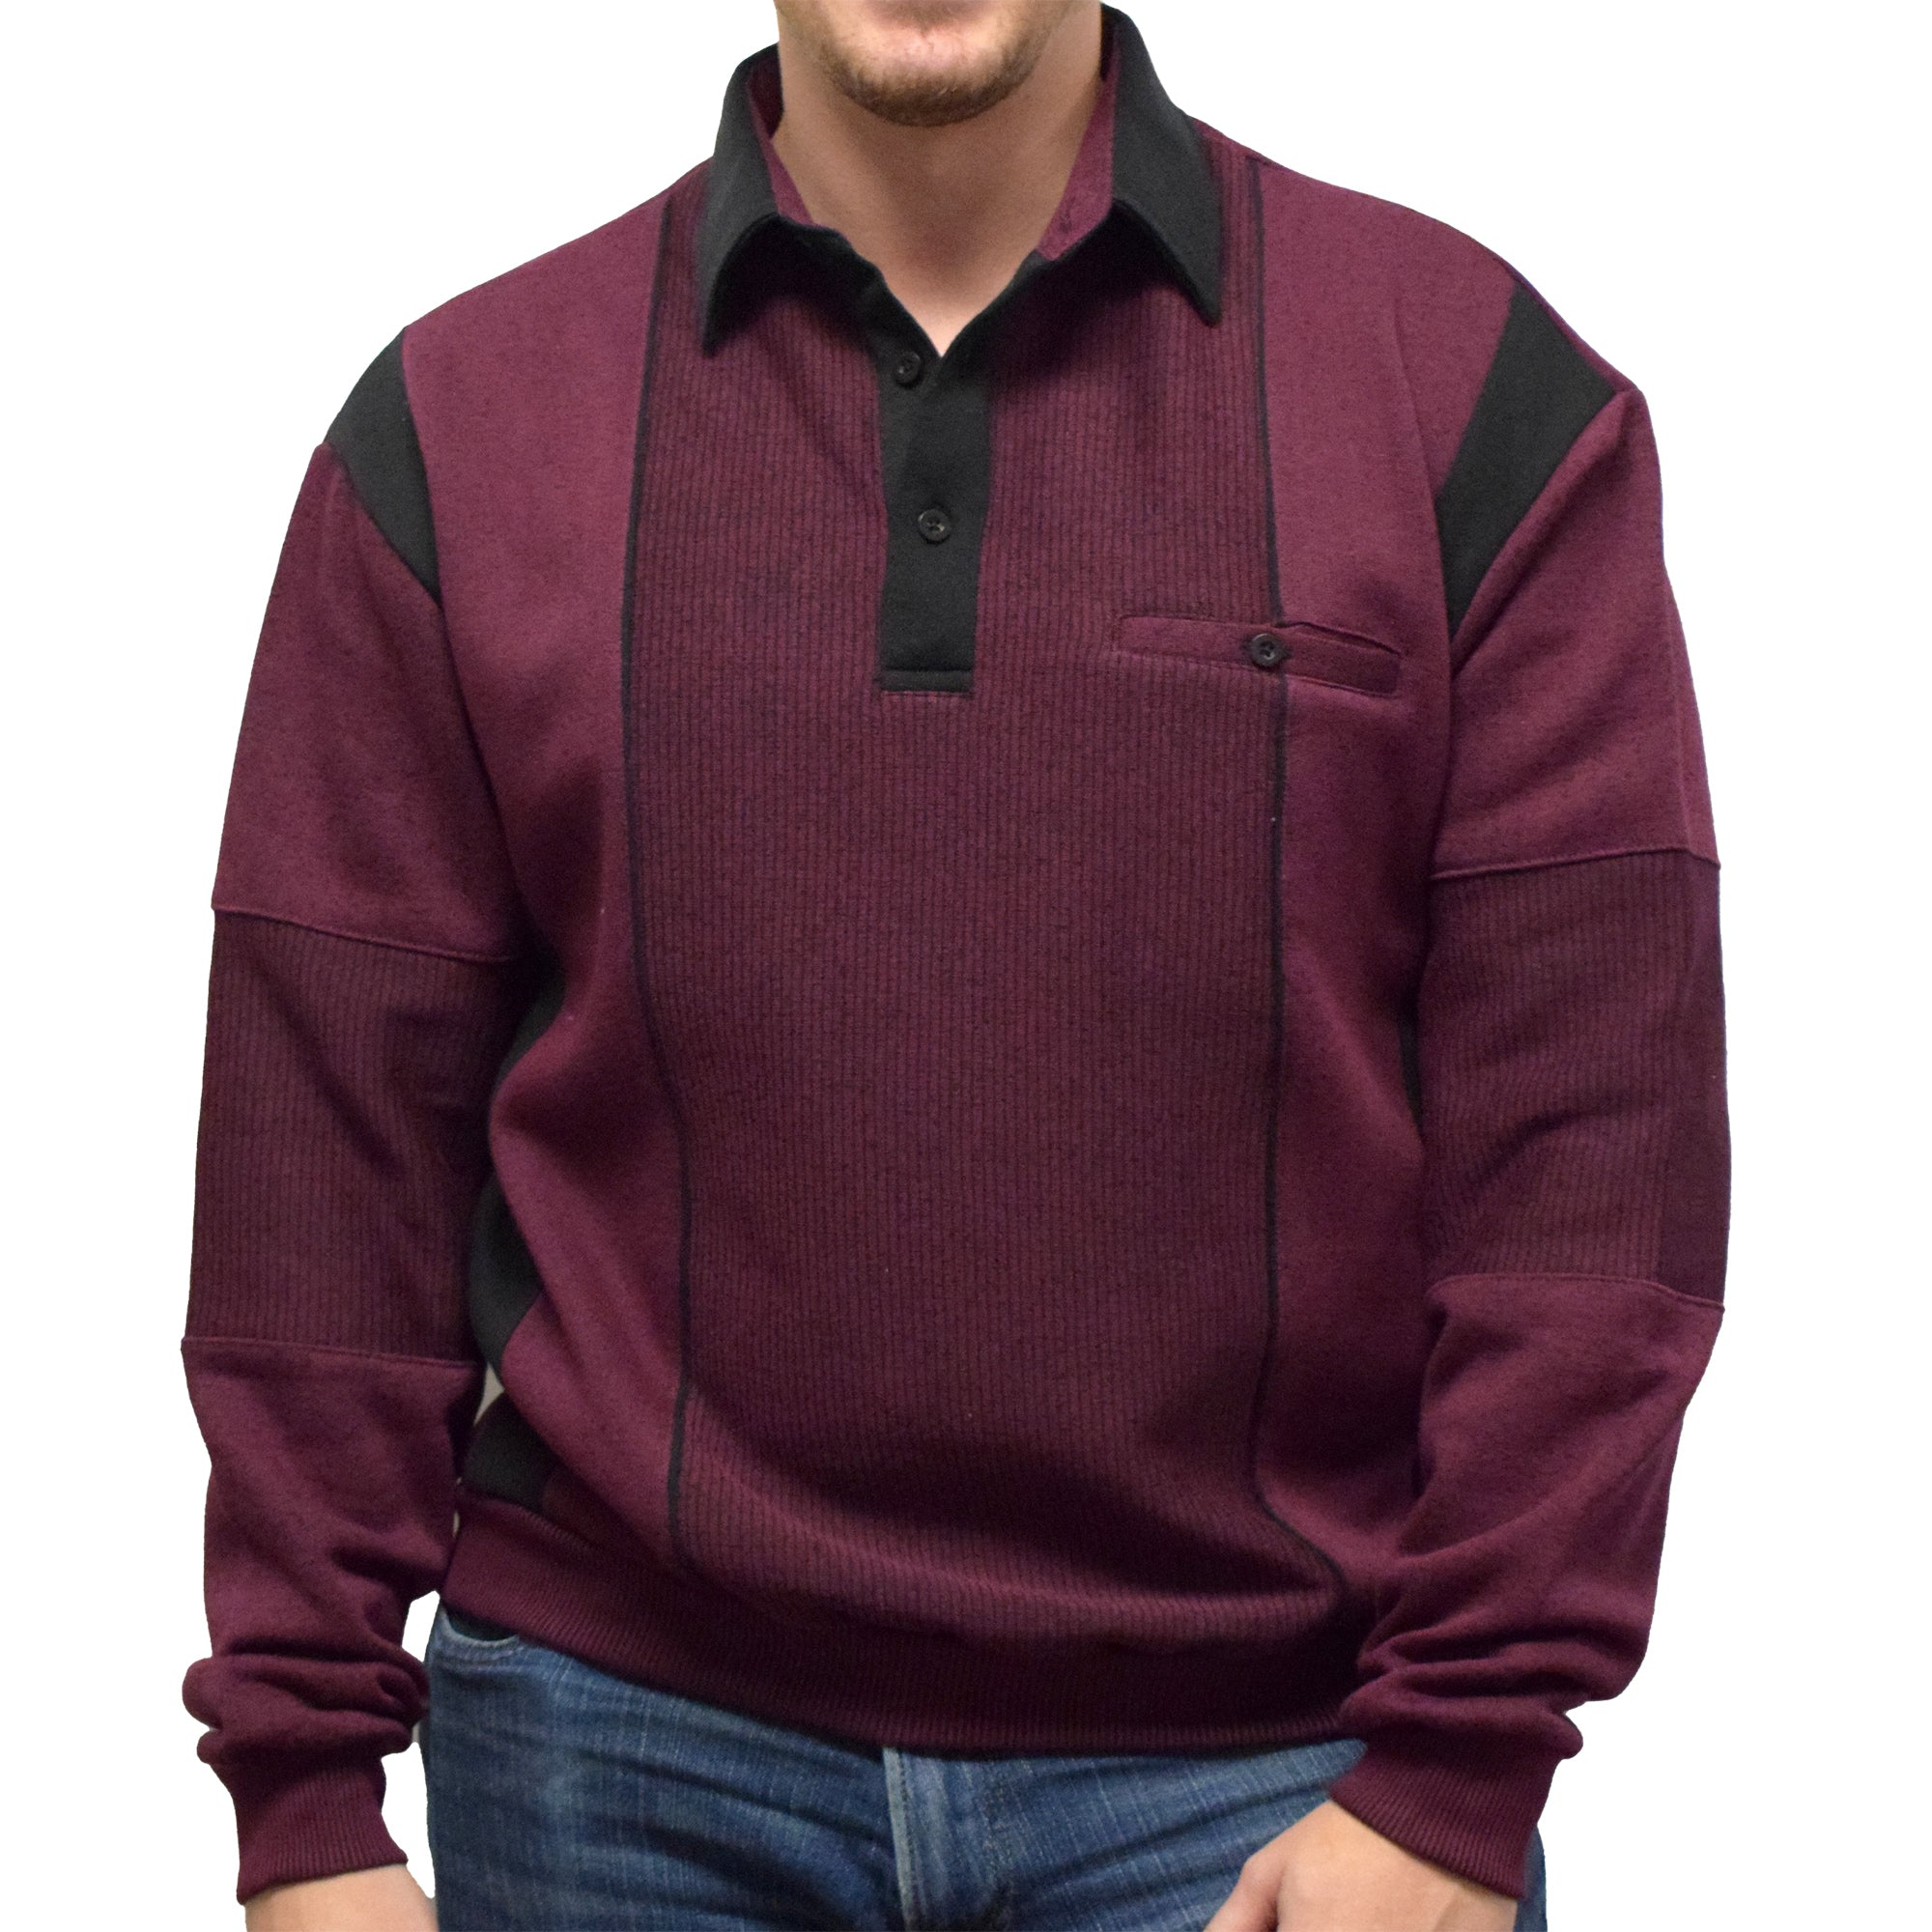 Classics by Palmland Two Tone Banded Bottom Shirt 6094-165B Wine